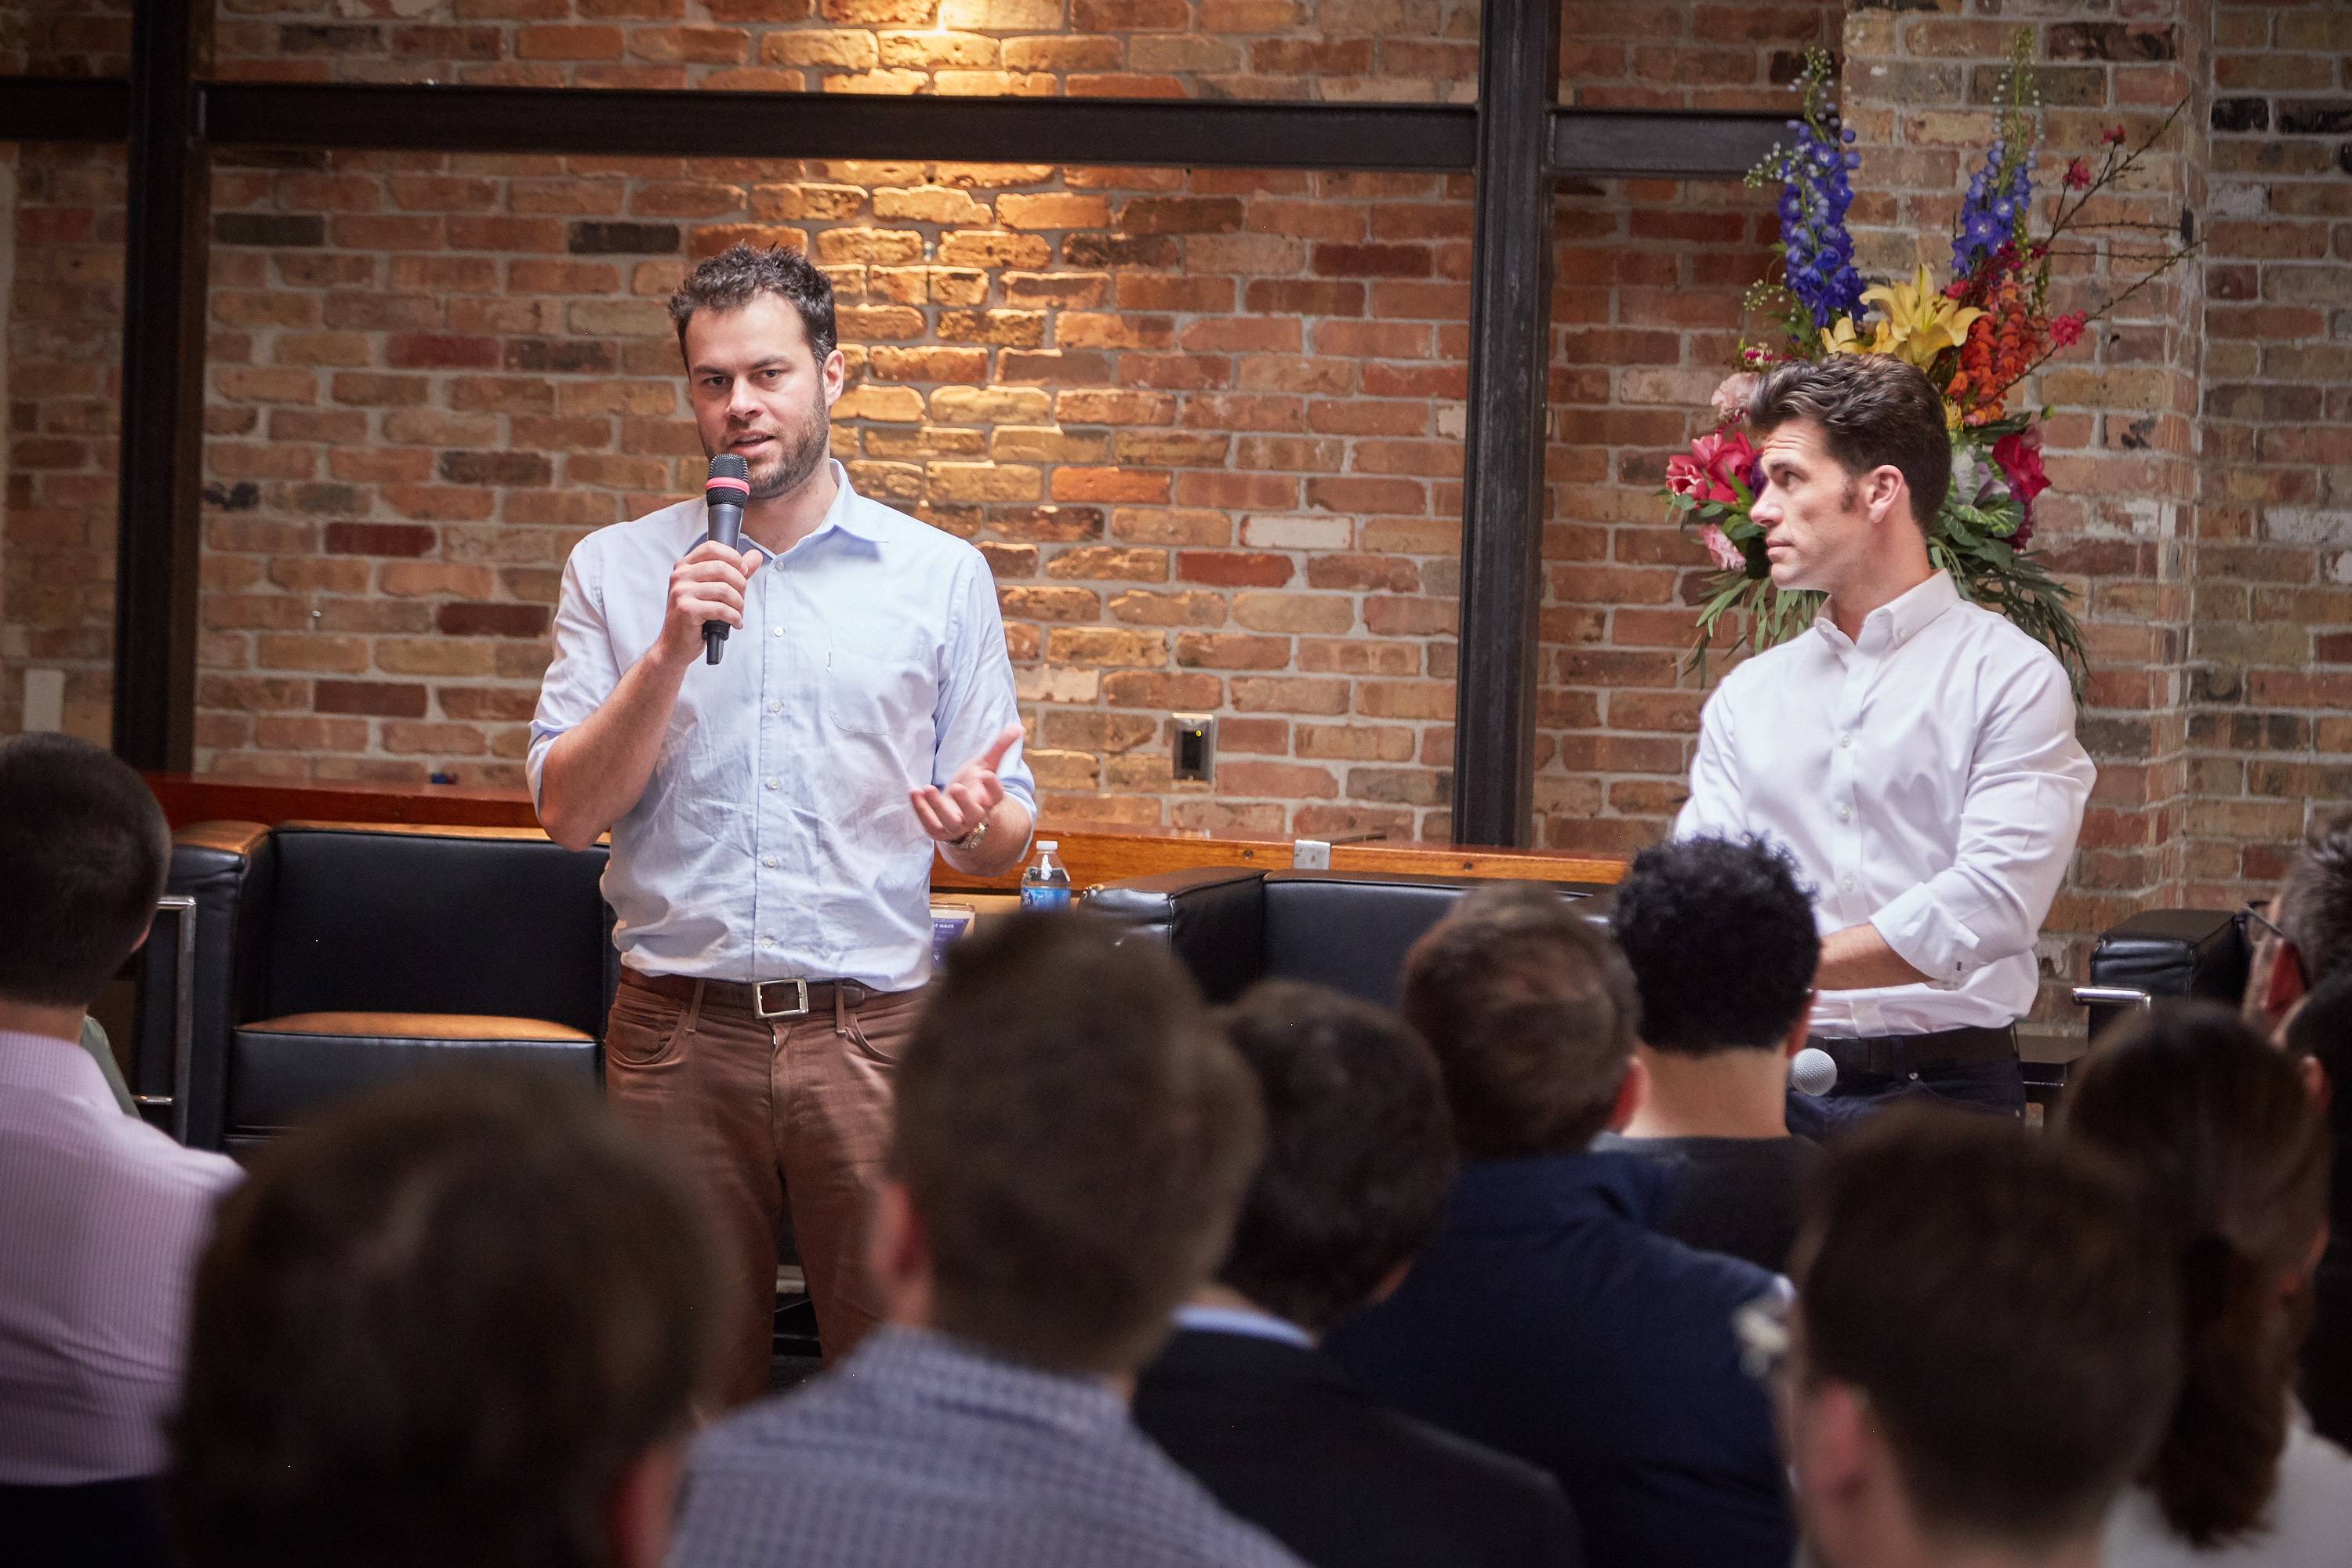 Fifth Wall managing partner Brad Greiwe speaking at an event.